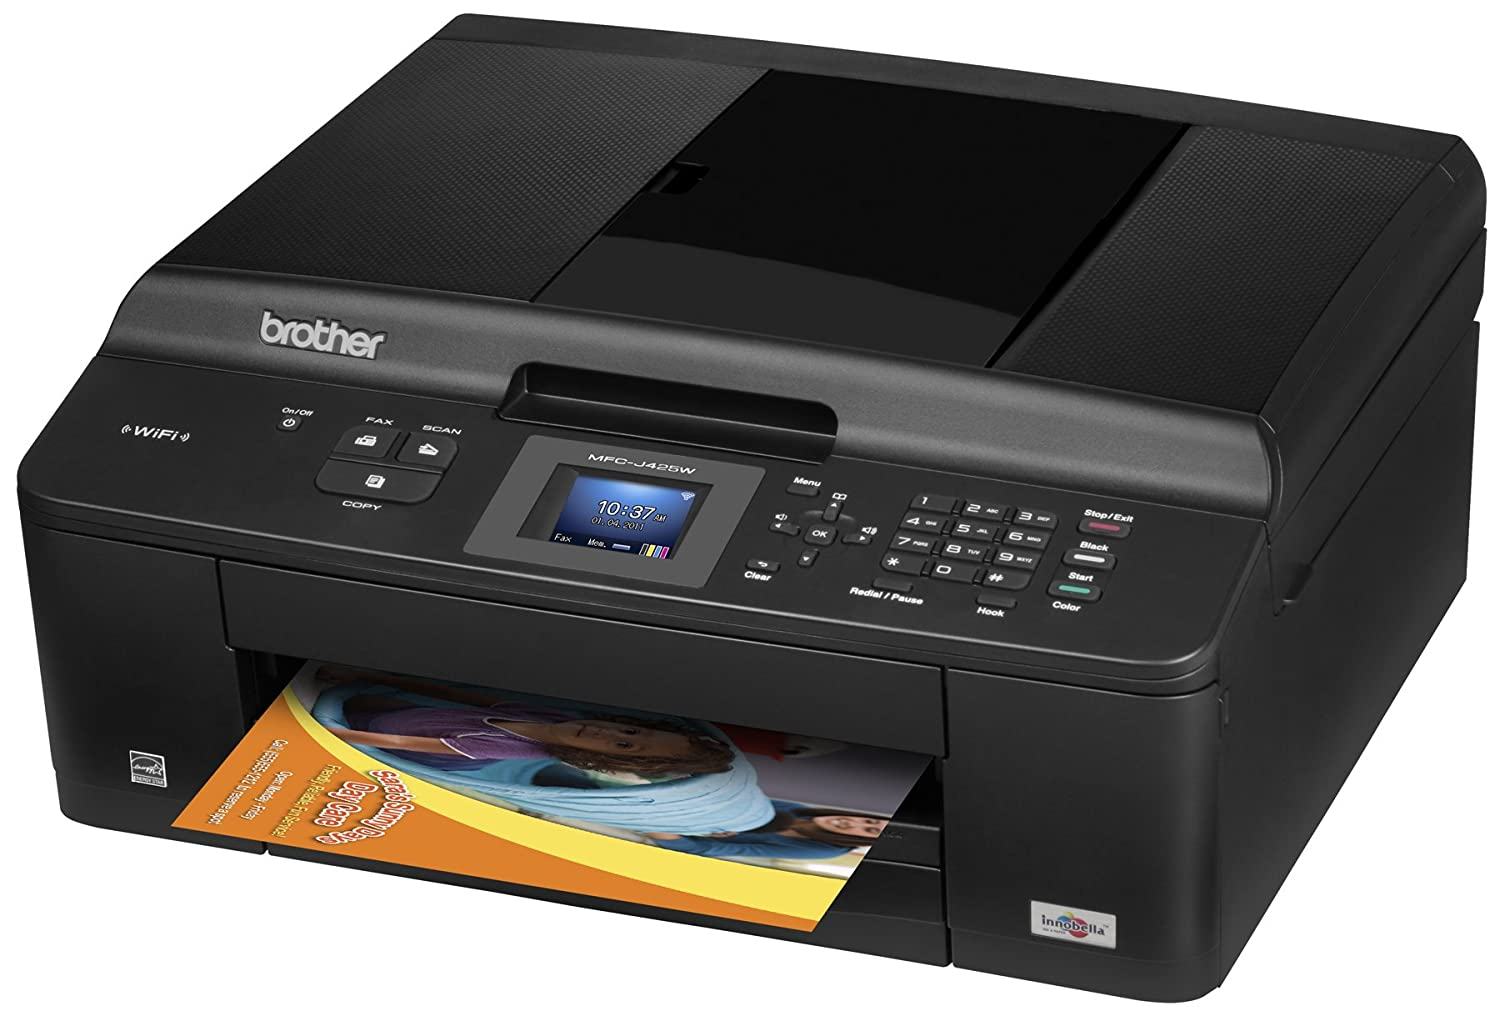 BROTHER PRINTER MFC J425W DRIVERS FOR WINDOWS XP